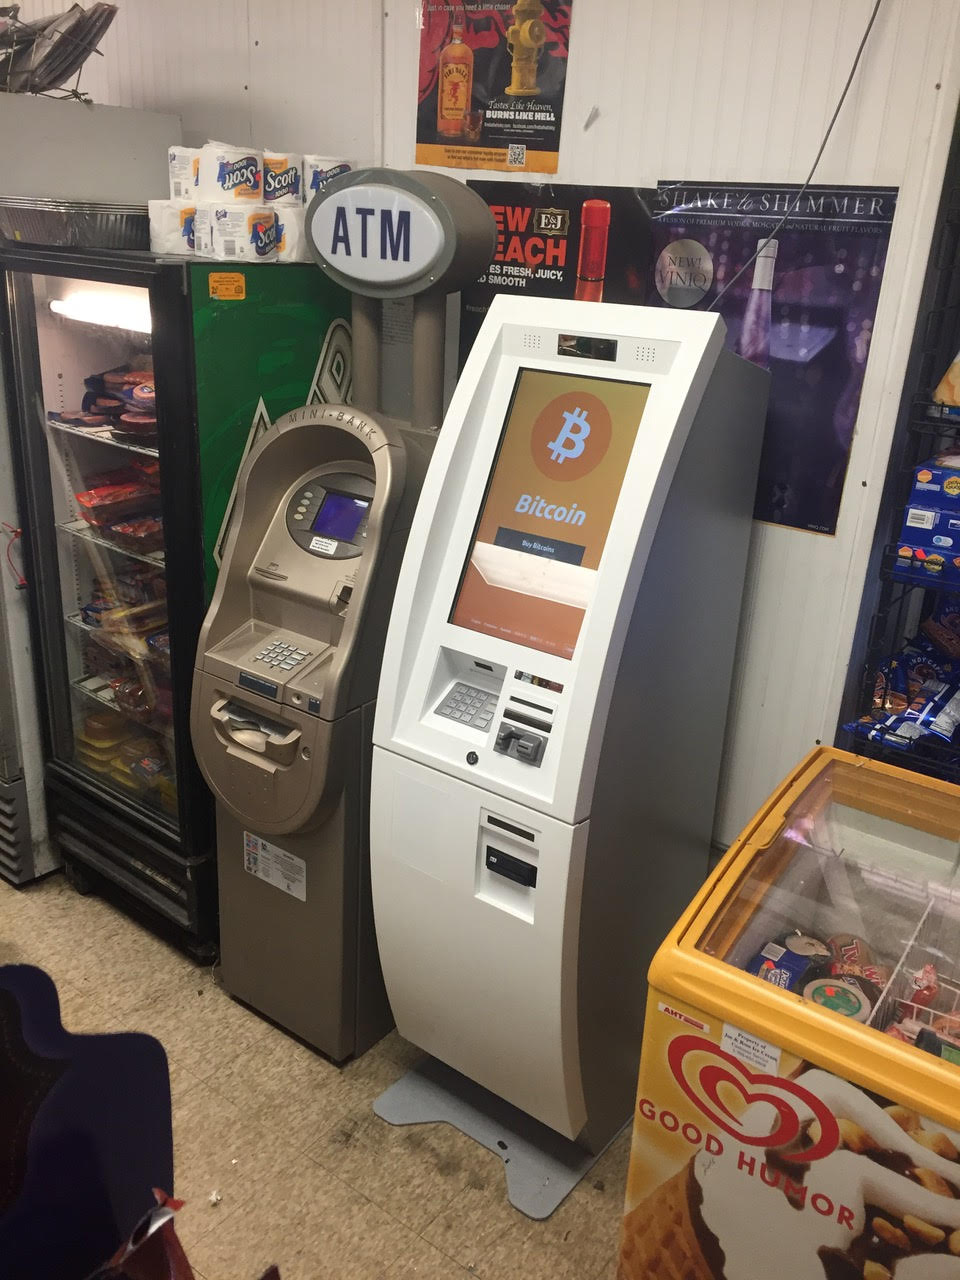 Bitcoin ATM Machine In King Food And Liquor South Side Chicago